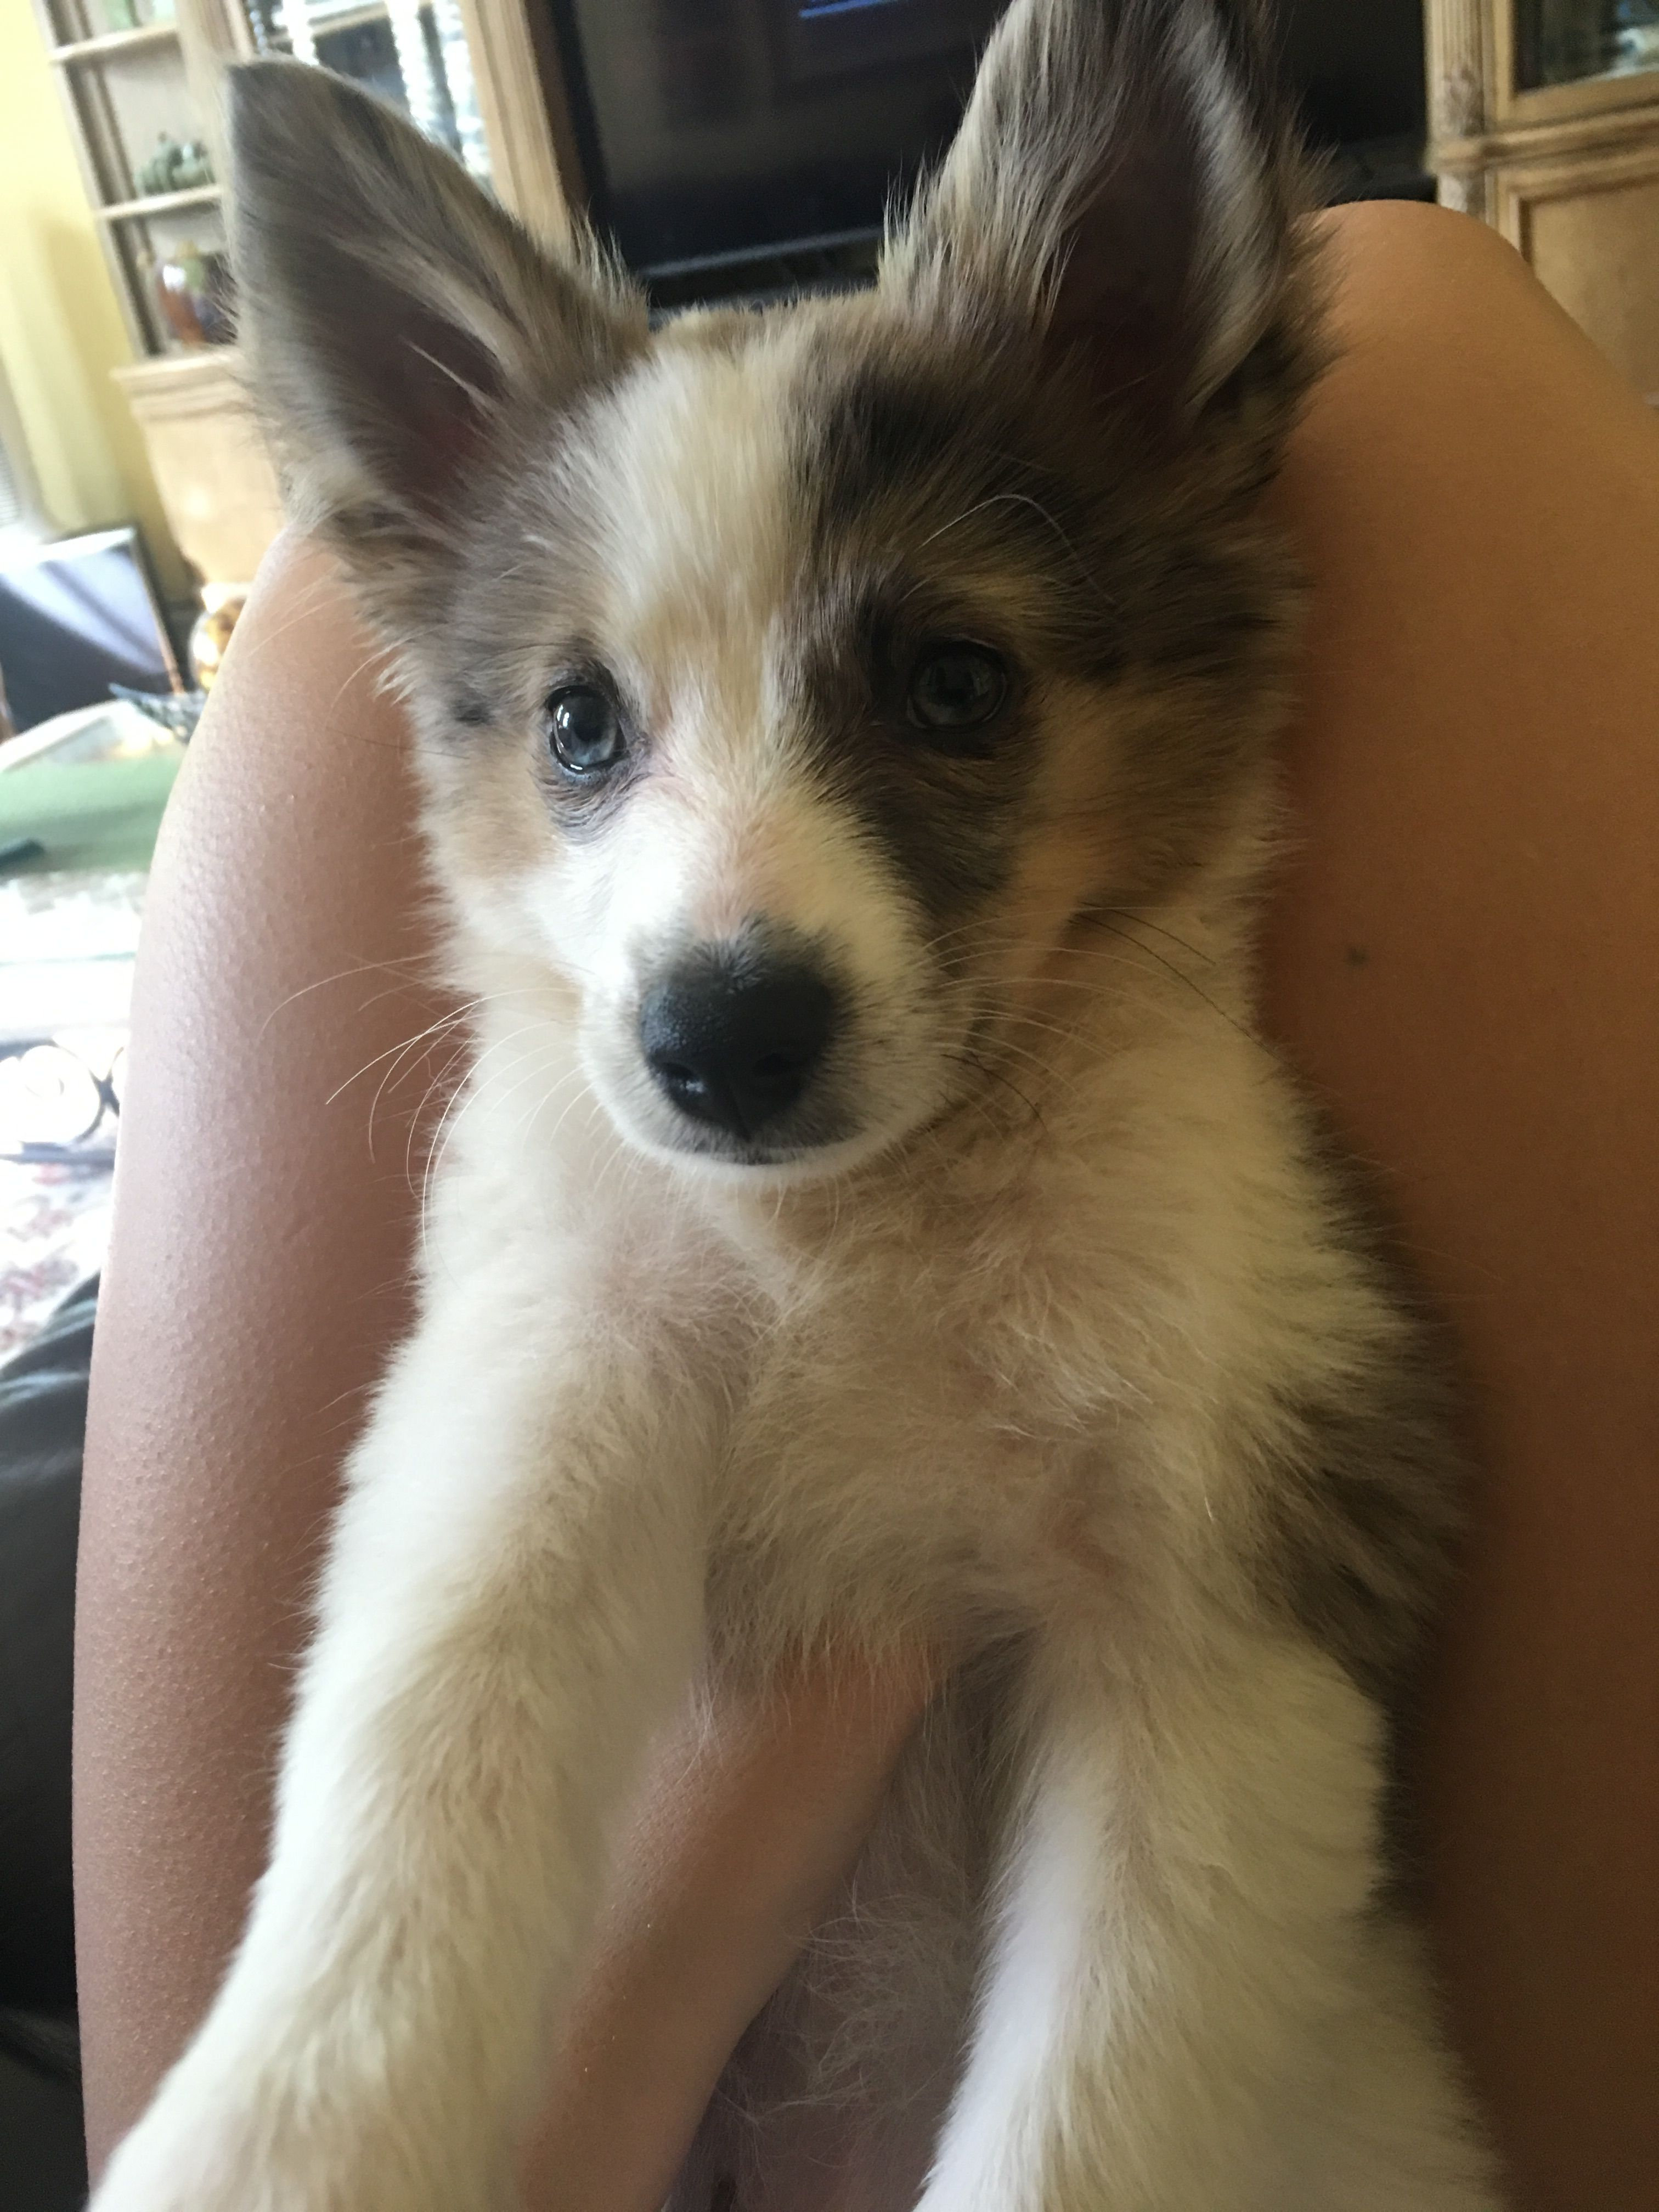 Australian Shepherd Mixed With American Eskimo Puppy American Eskimo Dog Mix American Eskimo Dog American Eskimo Puppy